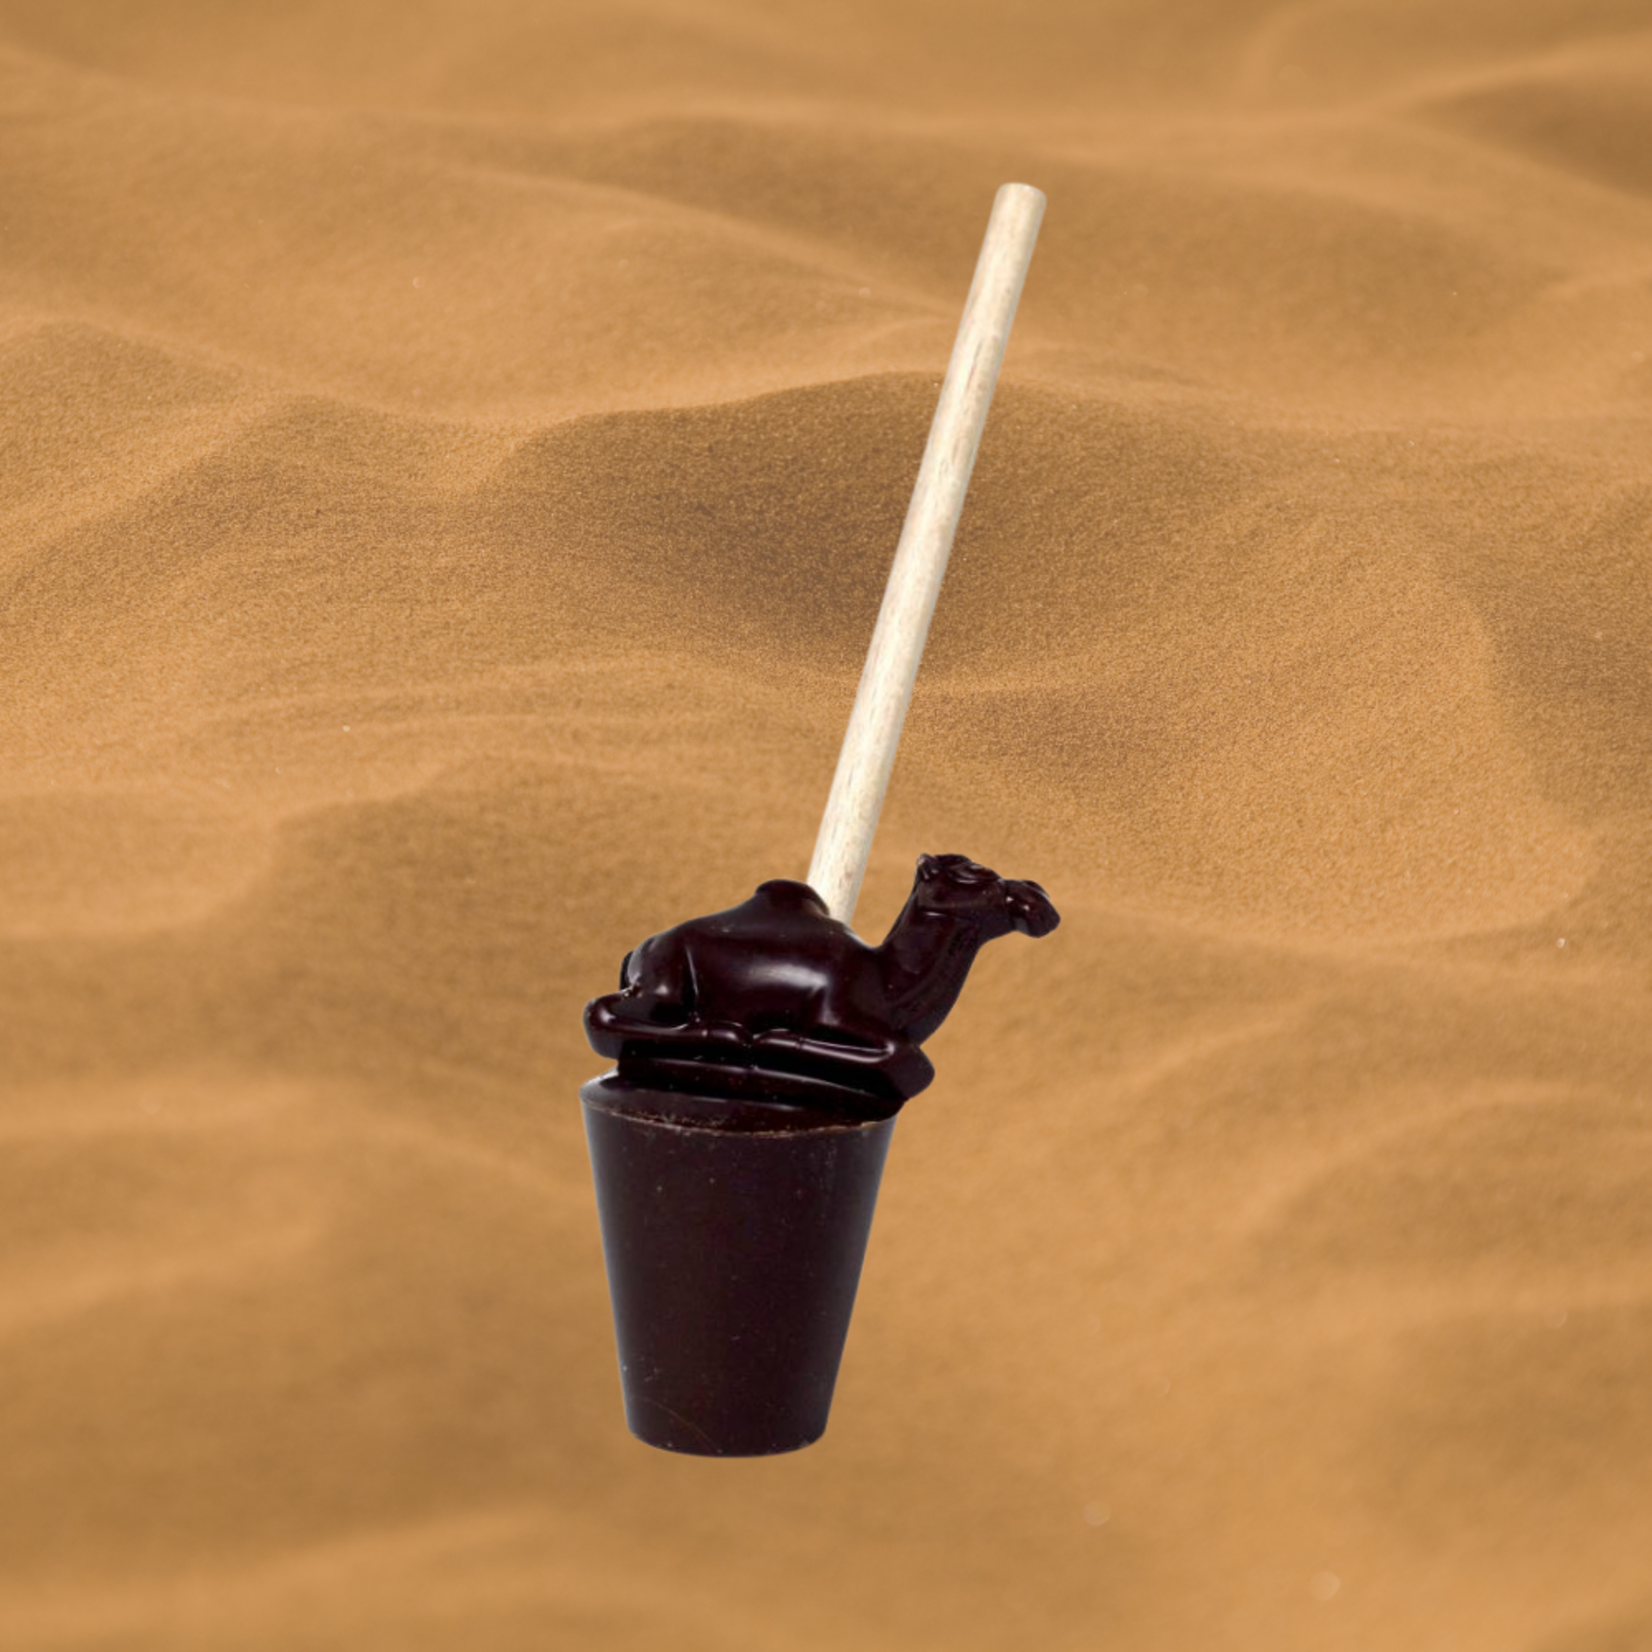 ChoCamel - Chocolate Lollipop made with Camel milk, for the best hot chocolate!